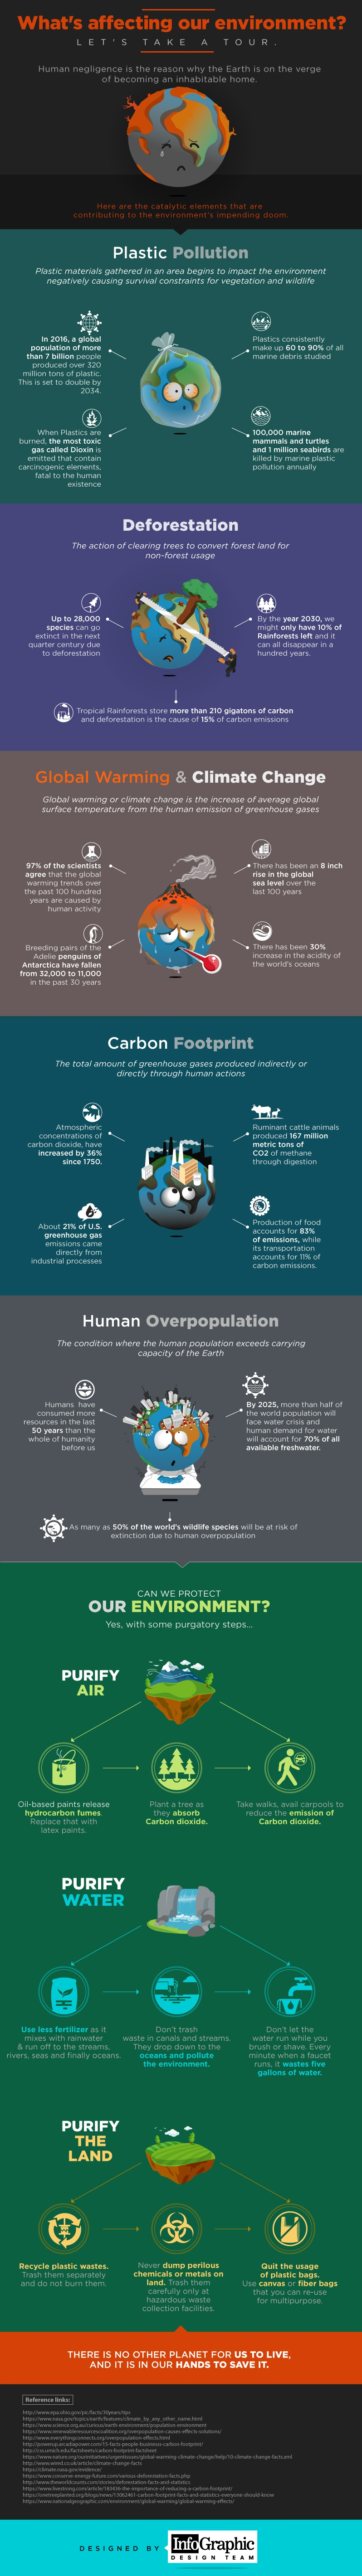 We've Got Only this One Planet. Can We Save It? - Infographic